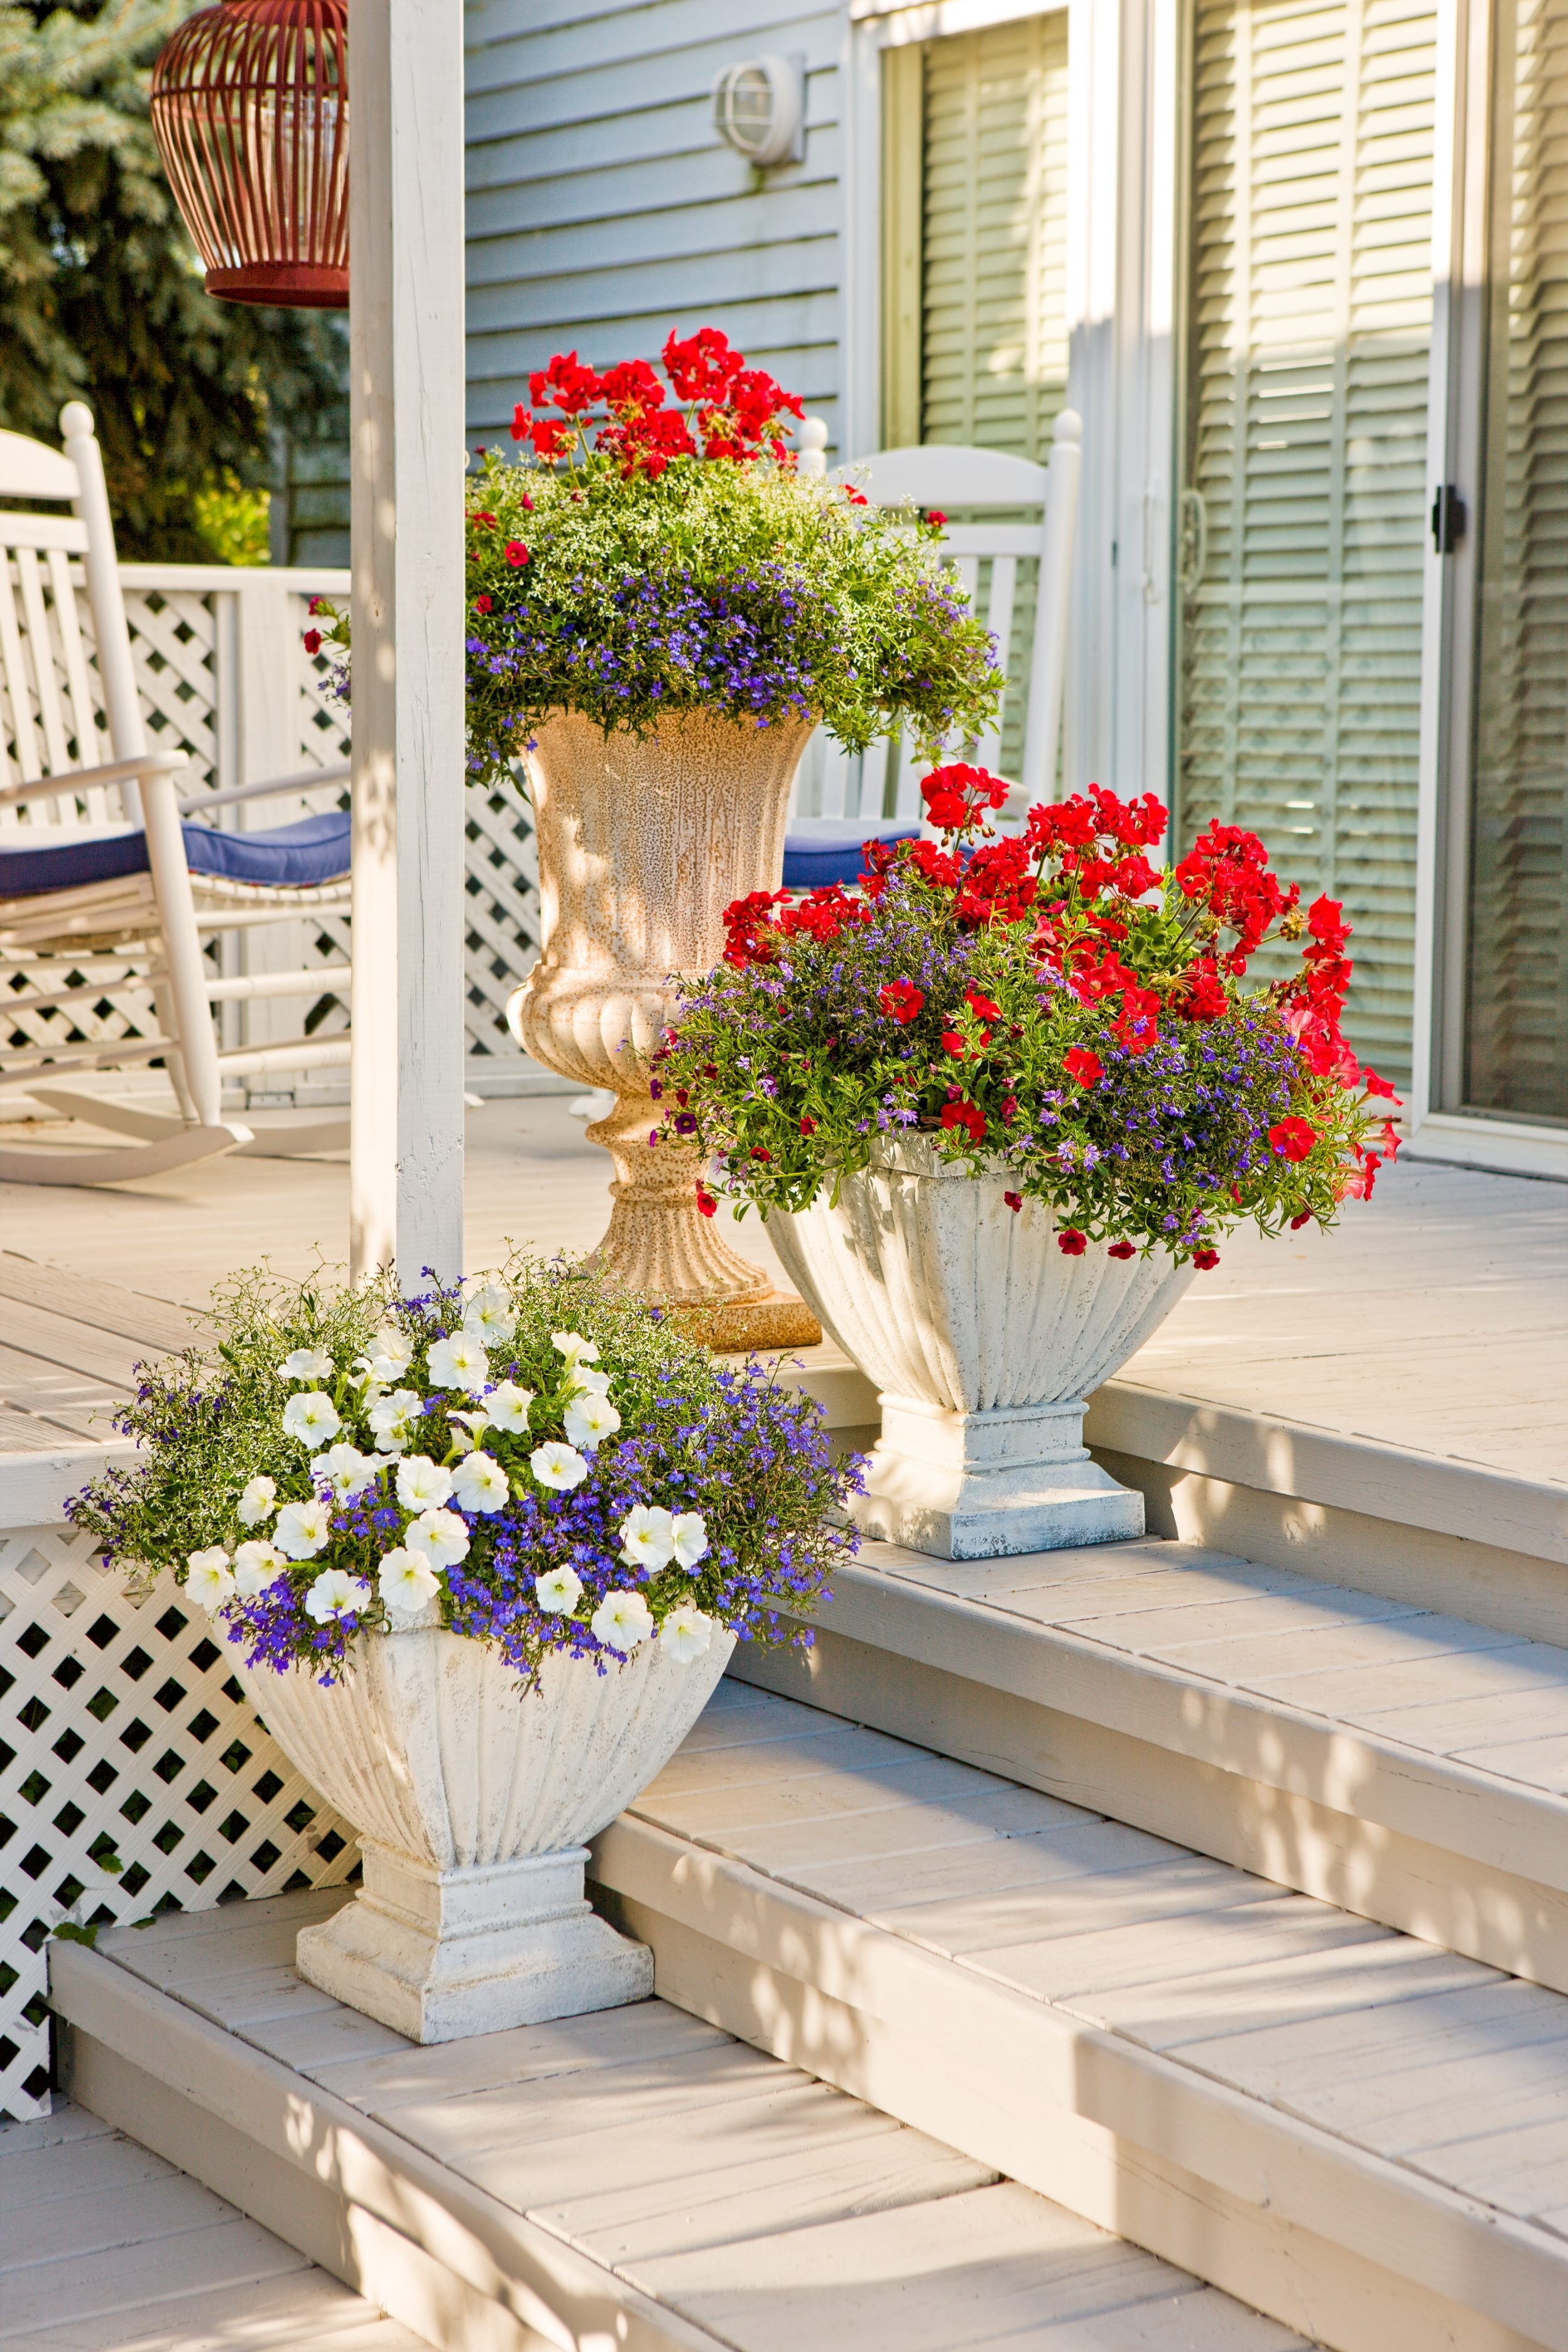 Potted red, white and blue flowers from Proven Winners are festive for the Fourth – and beyond.